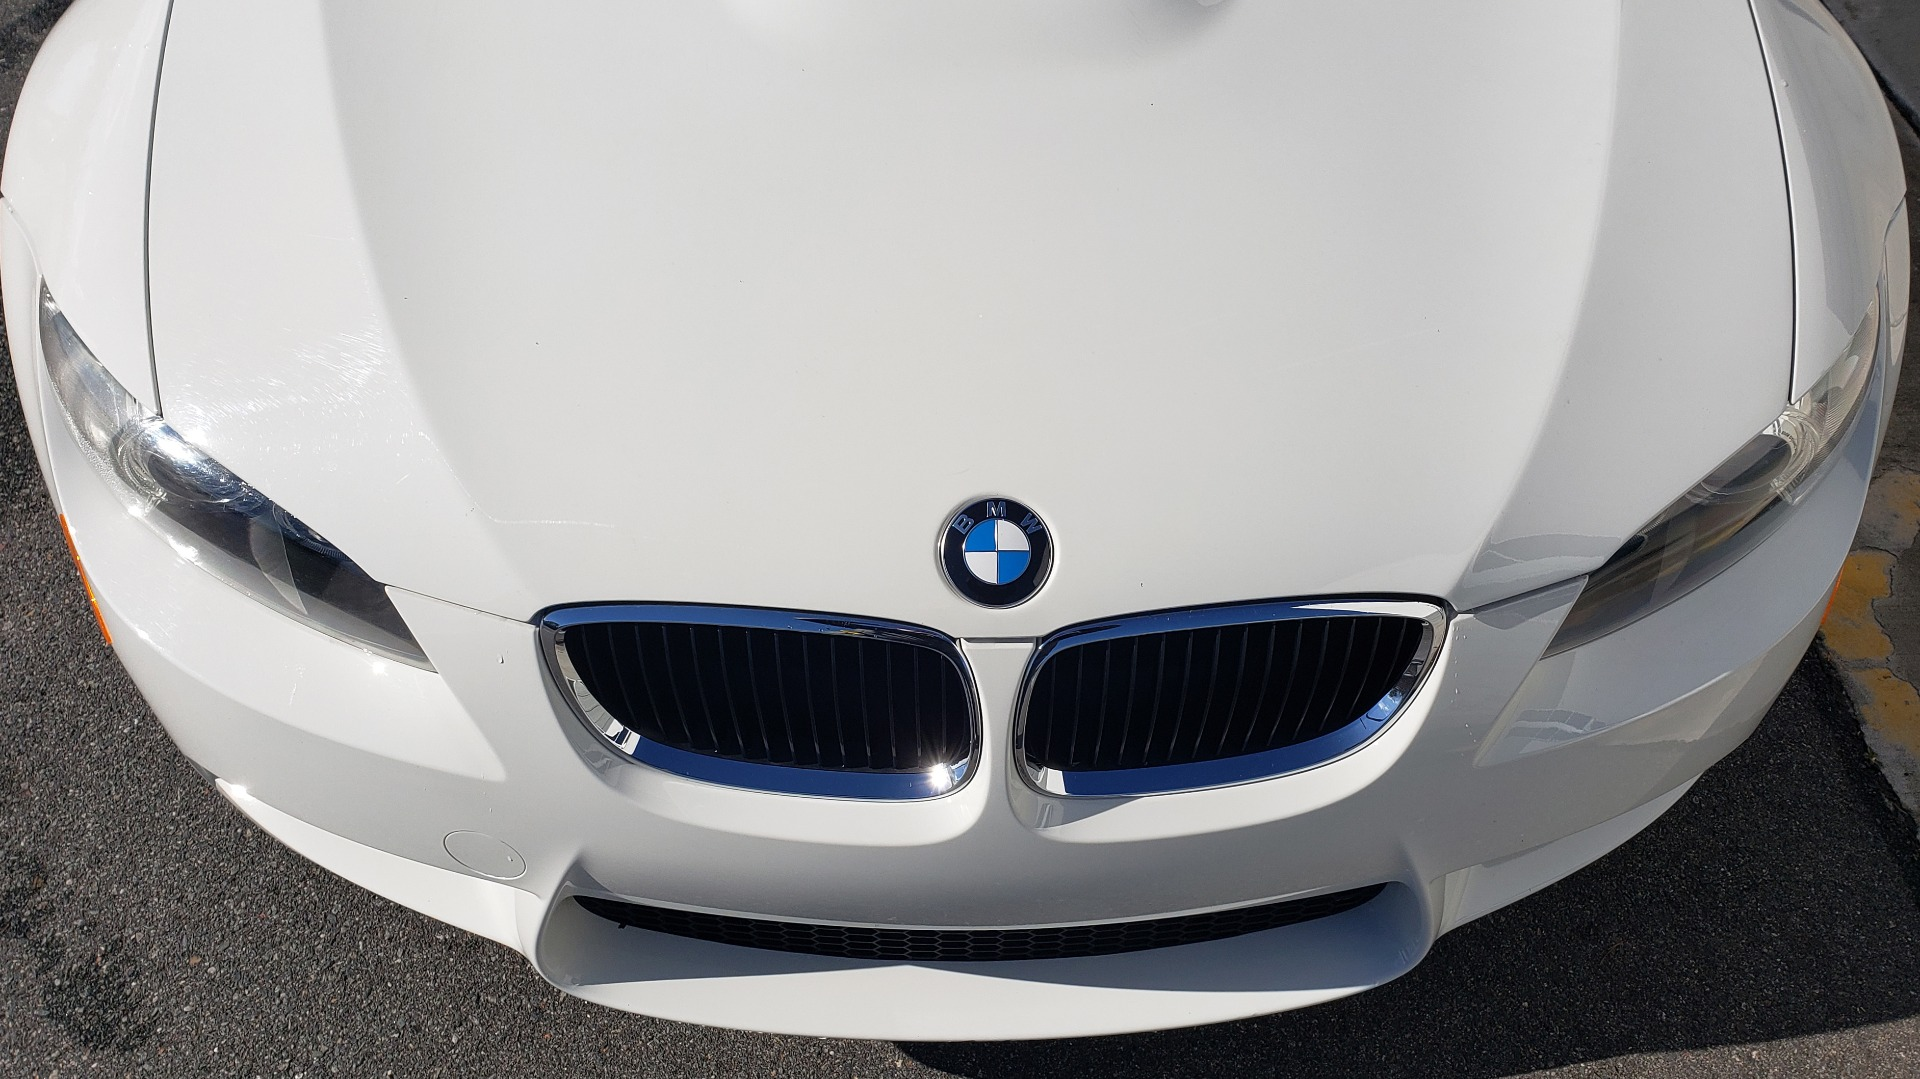 Used 2012 BMW M3 CONVERTIBLE / PREM PKG / NAV / M-DOUBLE CLUTCH AUTOMATIC for sale Sold at Formula Imports in Charlotte NC 28227 30